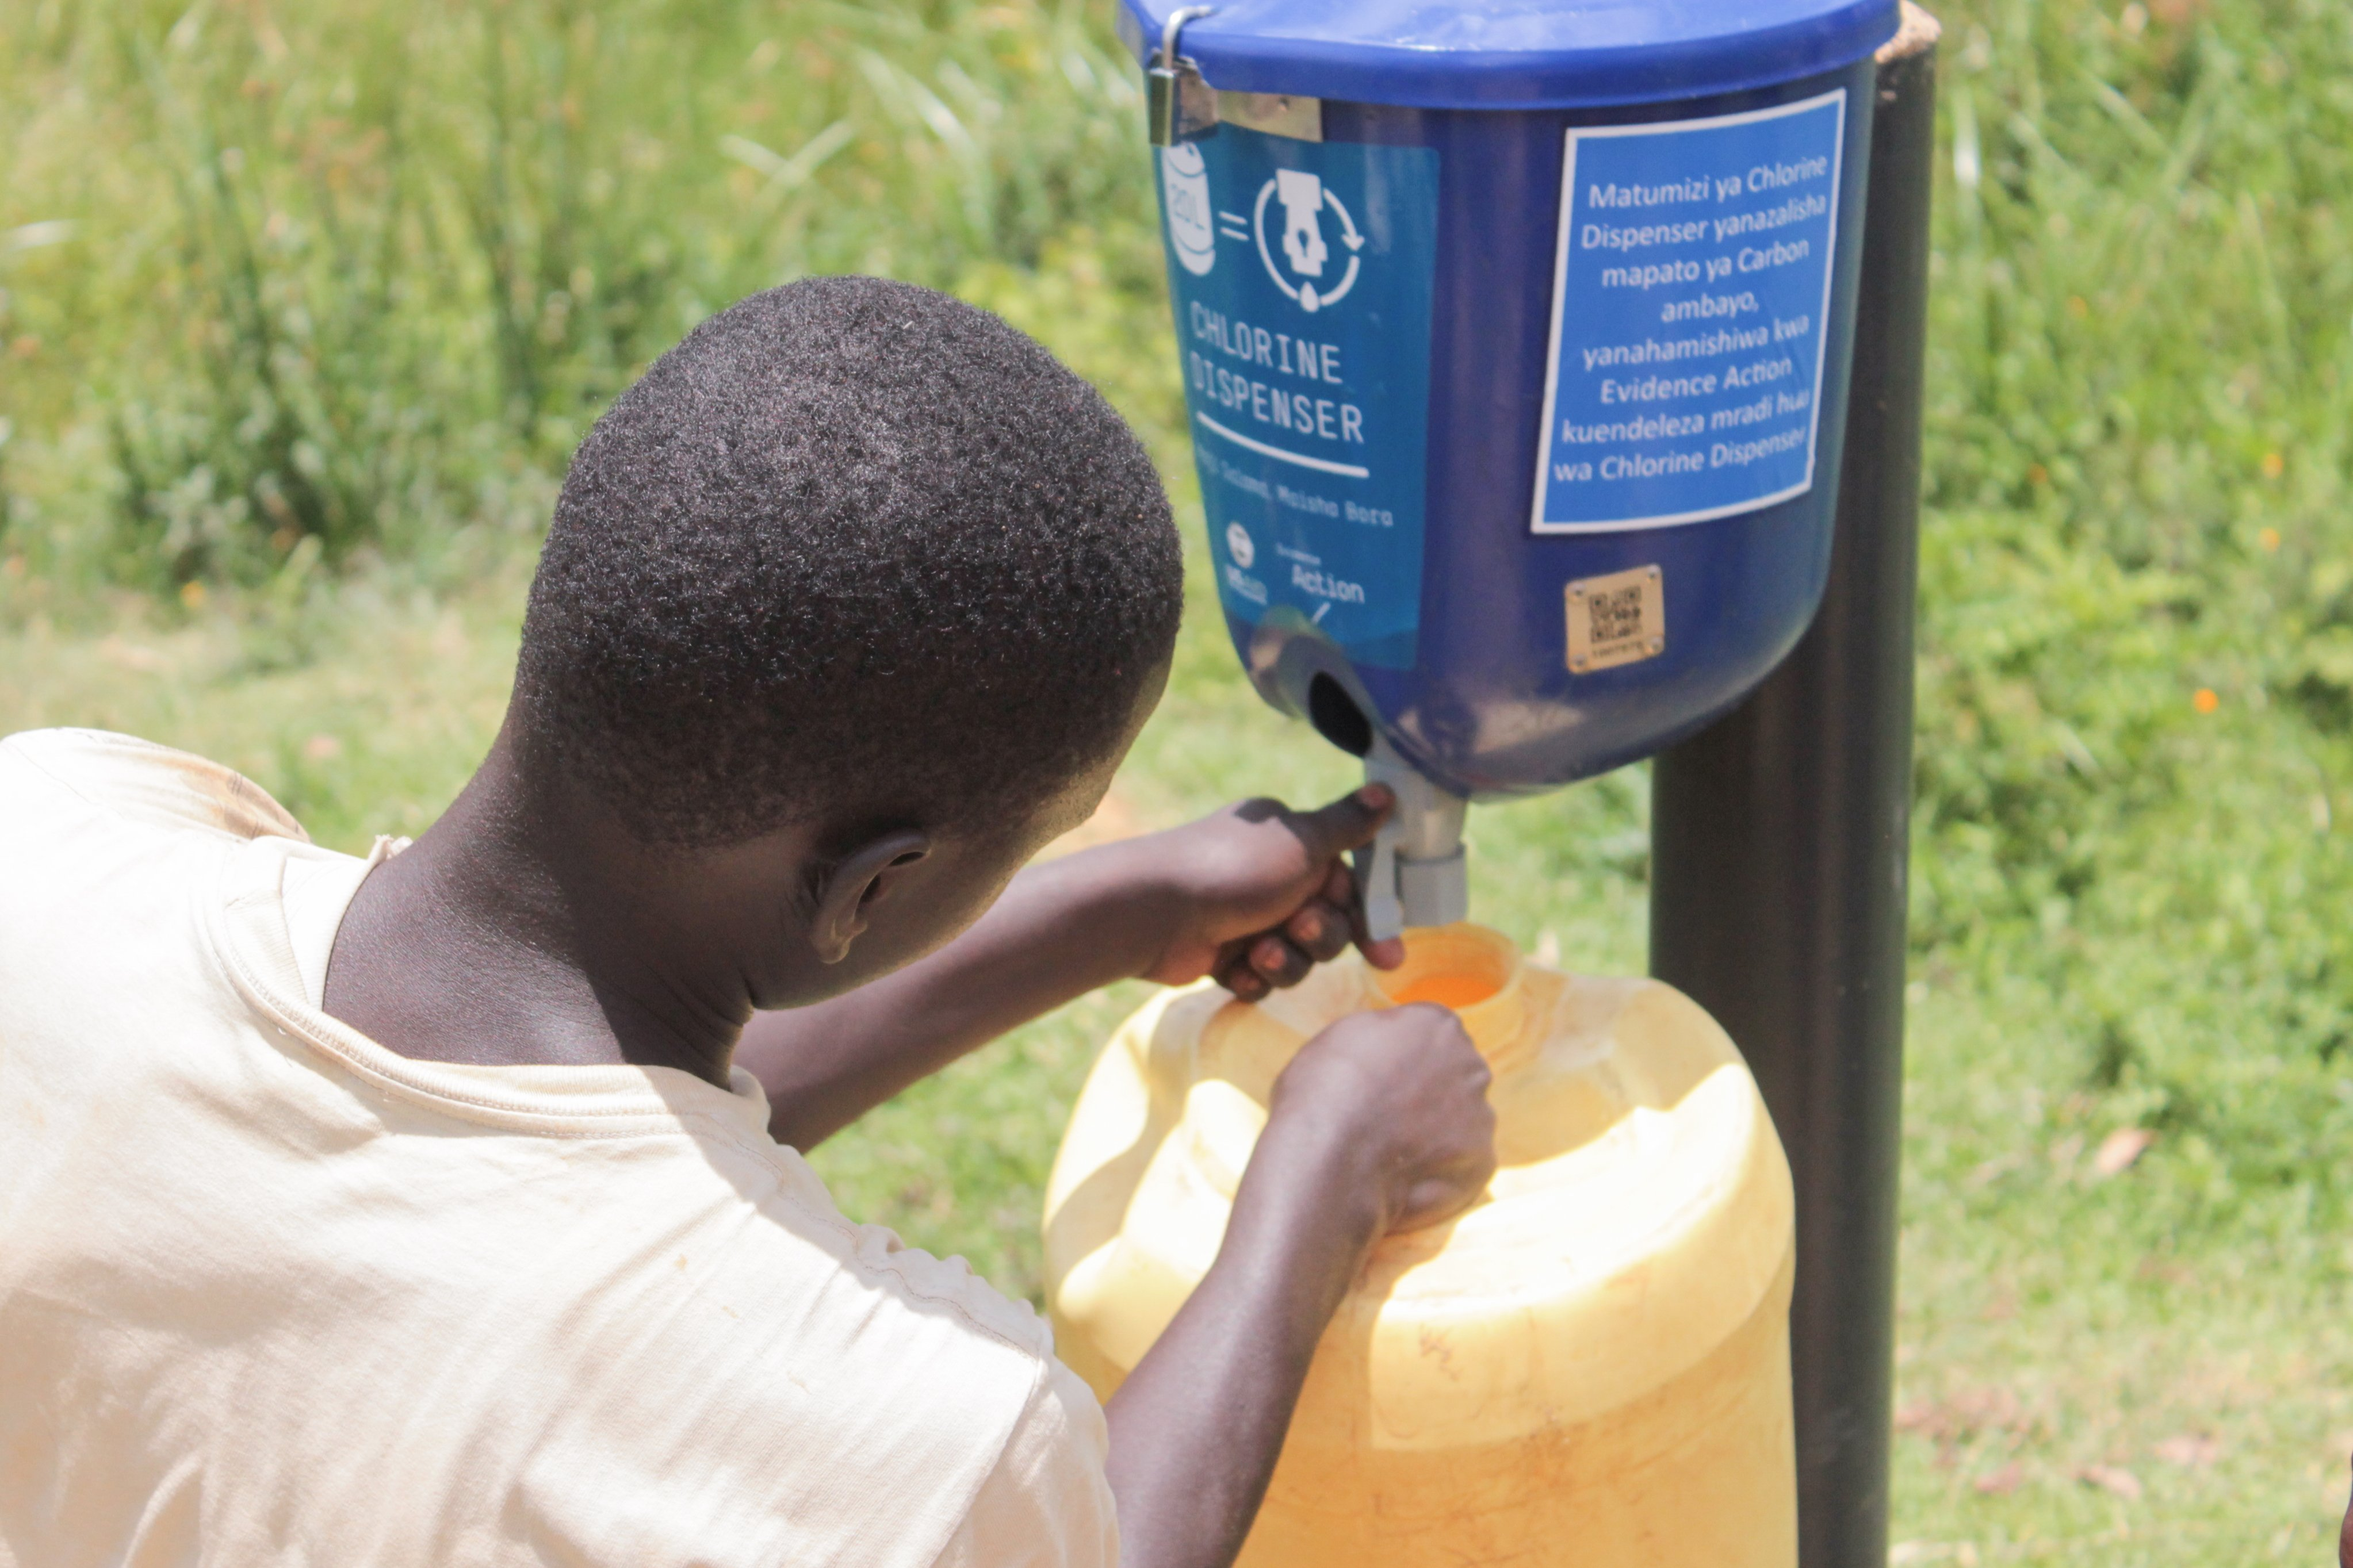 Using Data to Drive Demand for Chlorine Dispensers in Africa